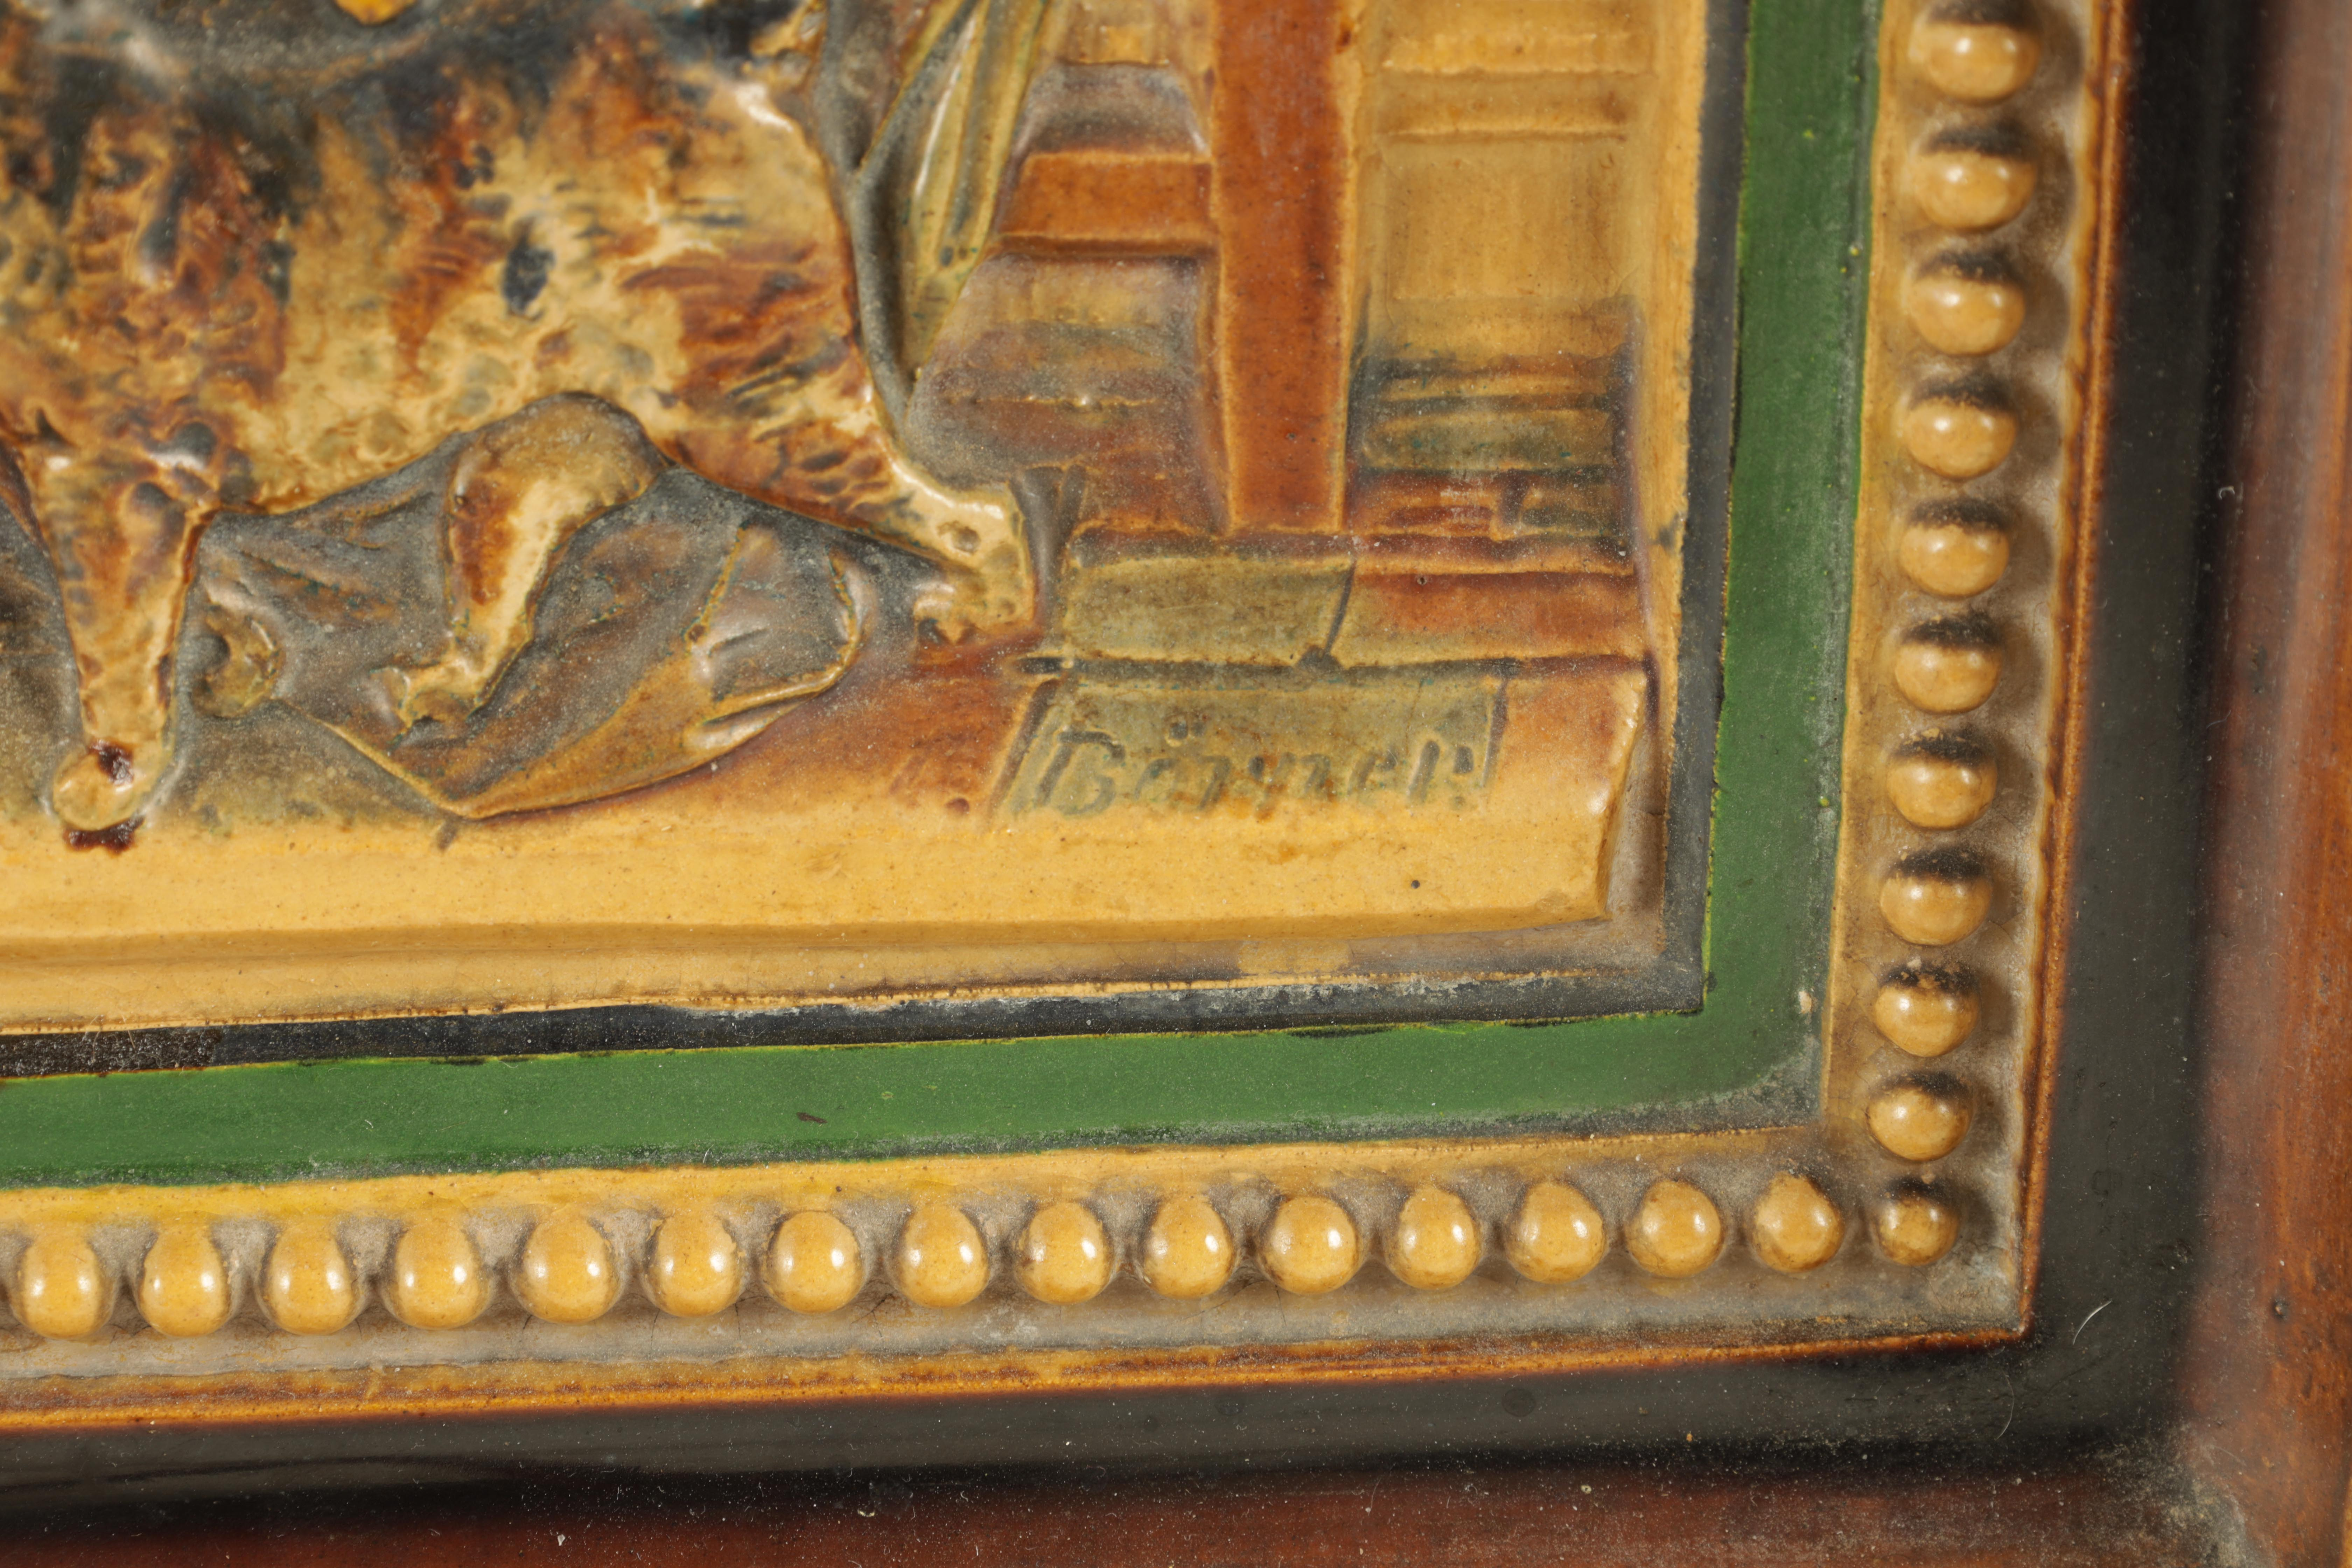 A 19TH CENTURY BORNER & BICHWEILER FIGURAL MAJOLICA HANGING PLAQUE decorated in polychrome colours - - Image 4 of 5